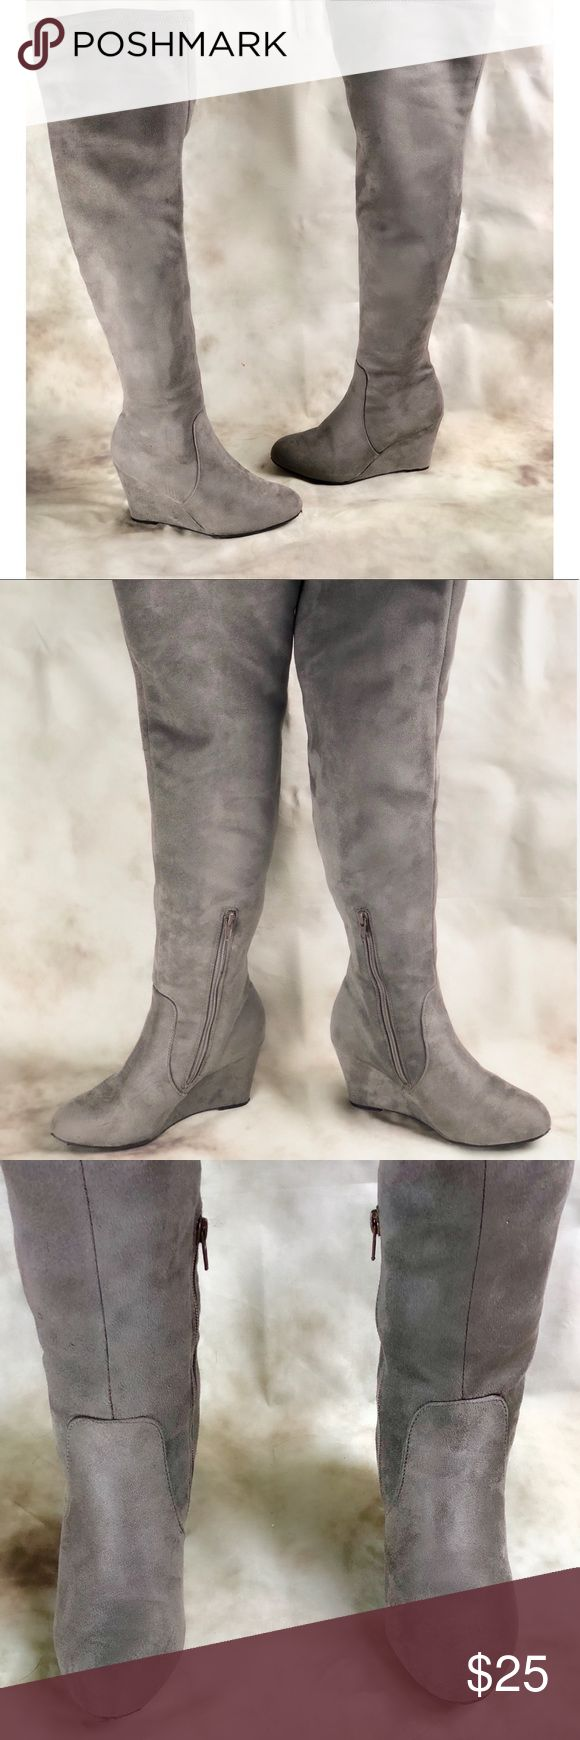 Chinese Laundry Grey Faux Suede Knee High Boots Women's size 7, dove grey Knee High faux suede wedge boots. Stretchy shaft, low Wedge. Pre owned but in like new condition. Shoe only shows signs of wear on sole. Any discoloration in the photo is simply lighting: these boots are in great cosmetic condition. Chinese Laundry Shoes Over the Knee Boots